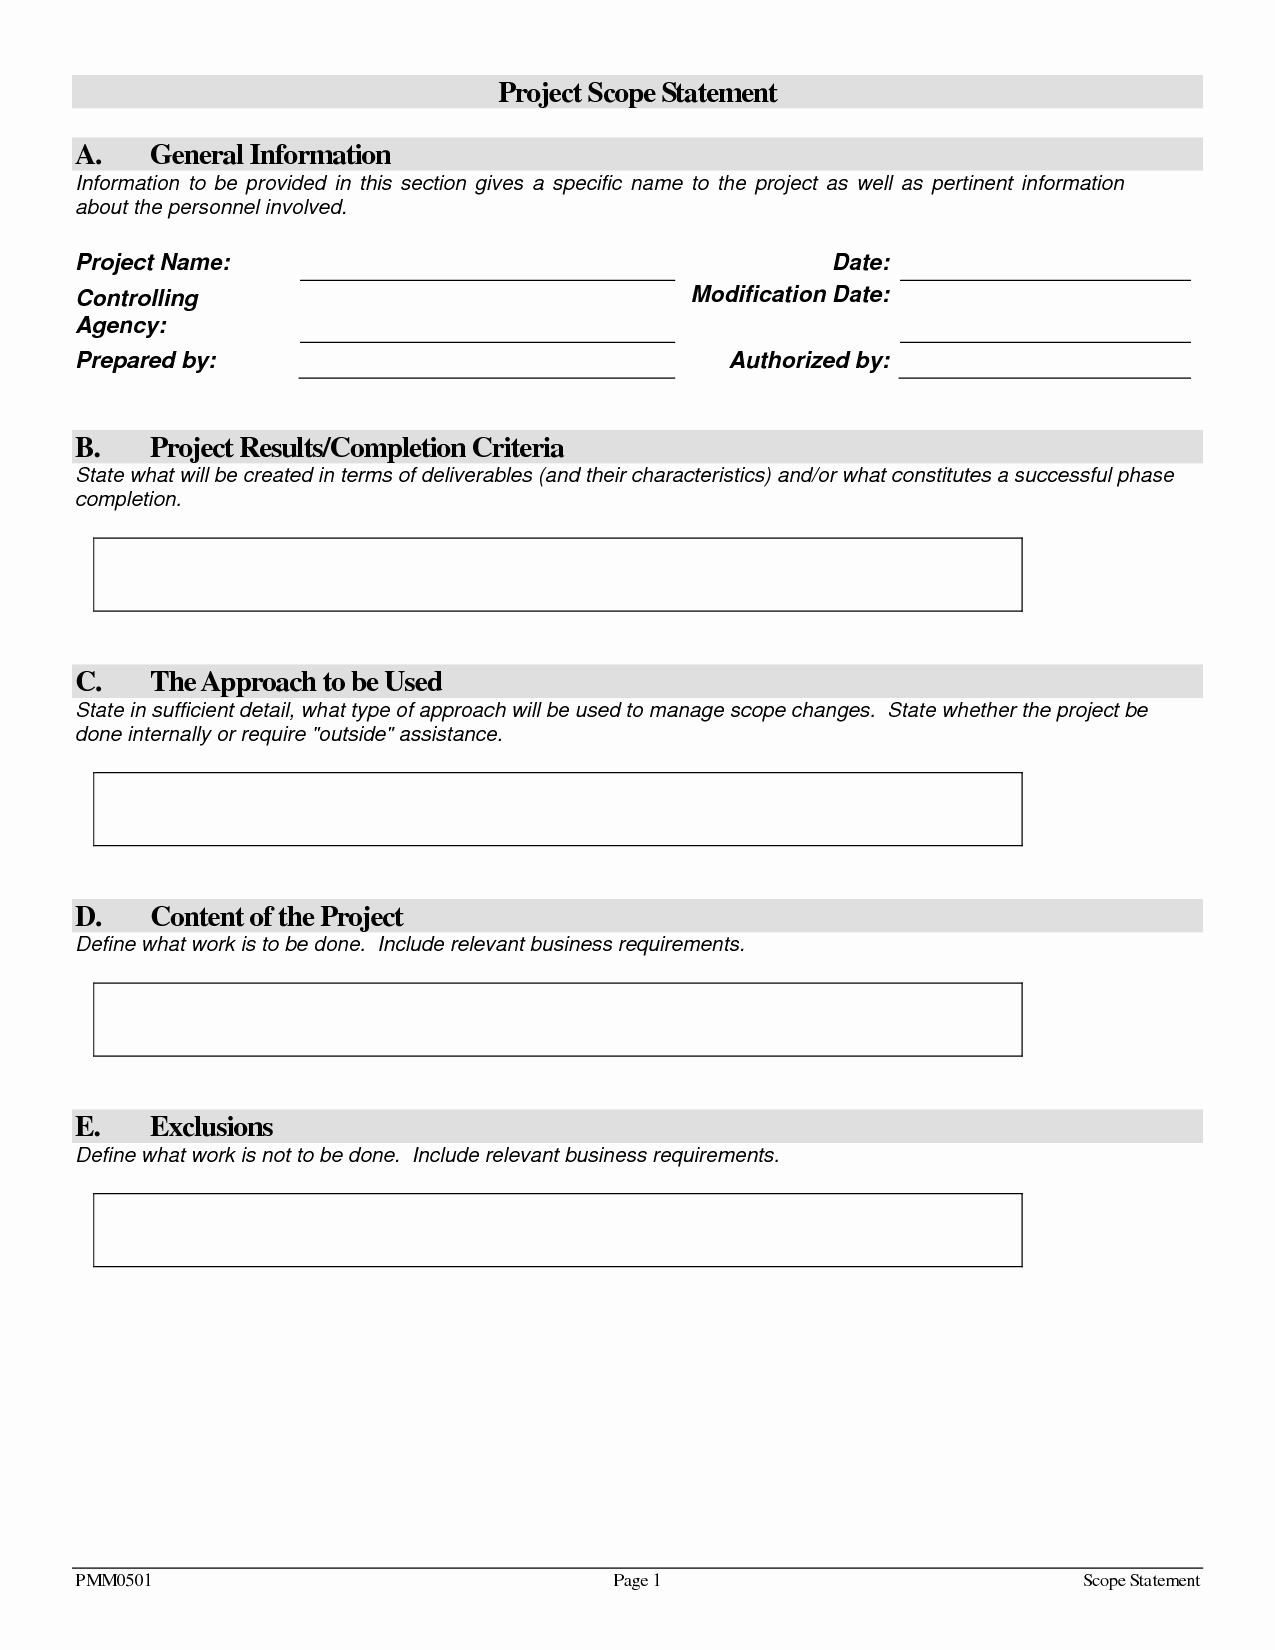 Project Scope Statement Template Fresh Project Scope Template